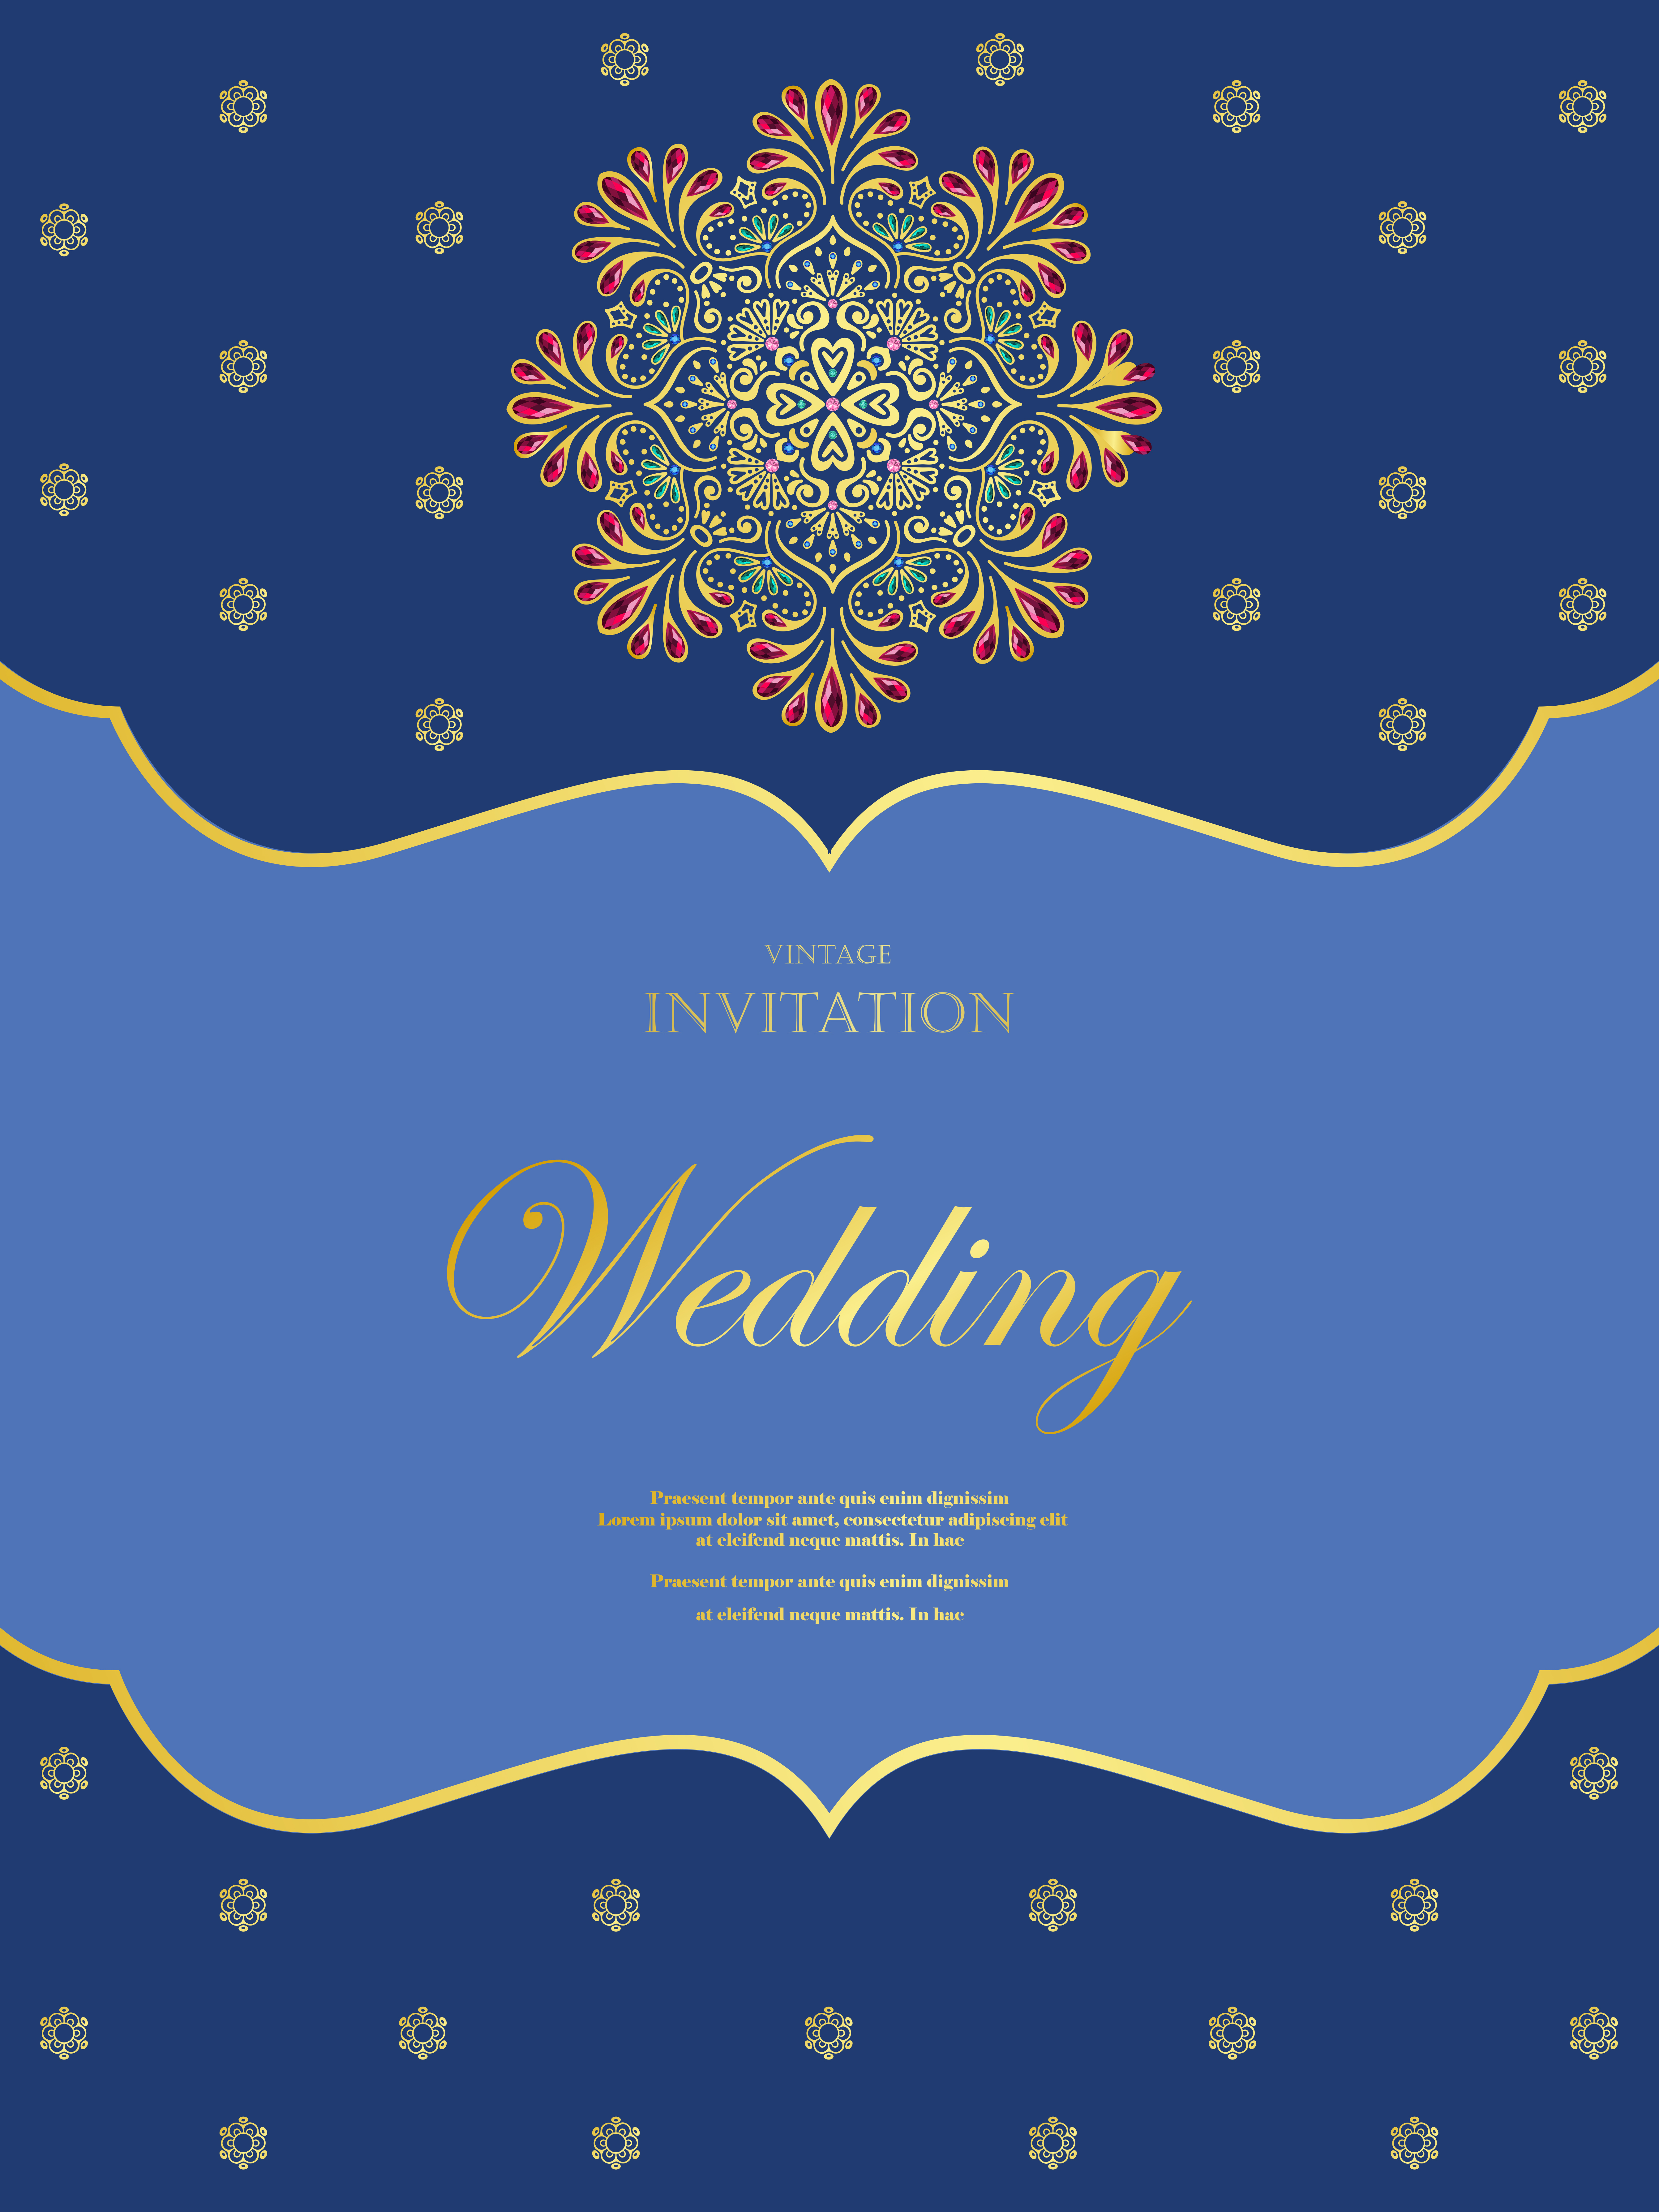 Wedding Or Invitation Card Vintage Style With Crystals Abstarct Pattern Background Vector Element Eps10 Illustration Indian Islam Wedding Invitation Download Free Vectors Clipart Graphics Vector Art